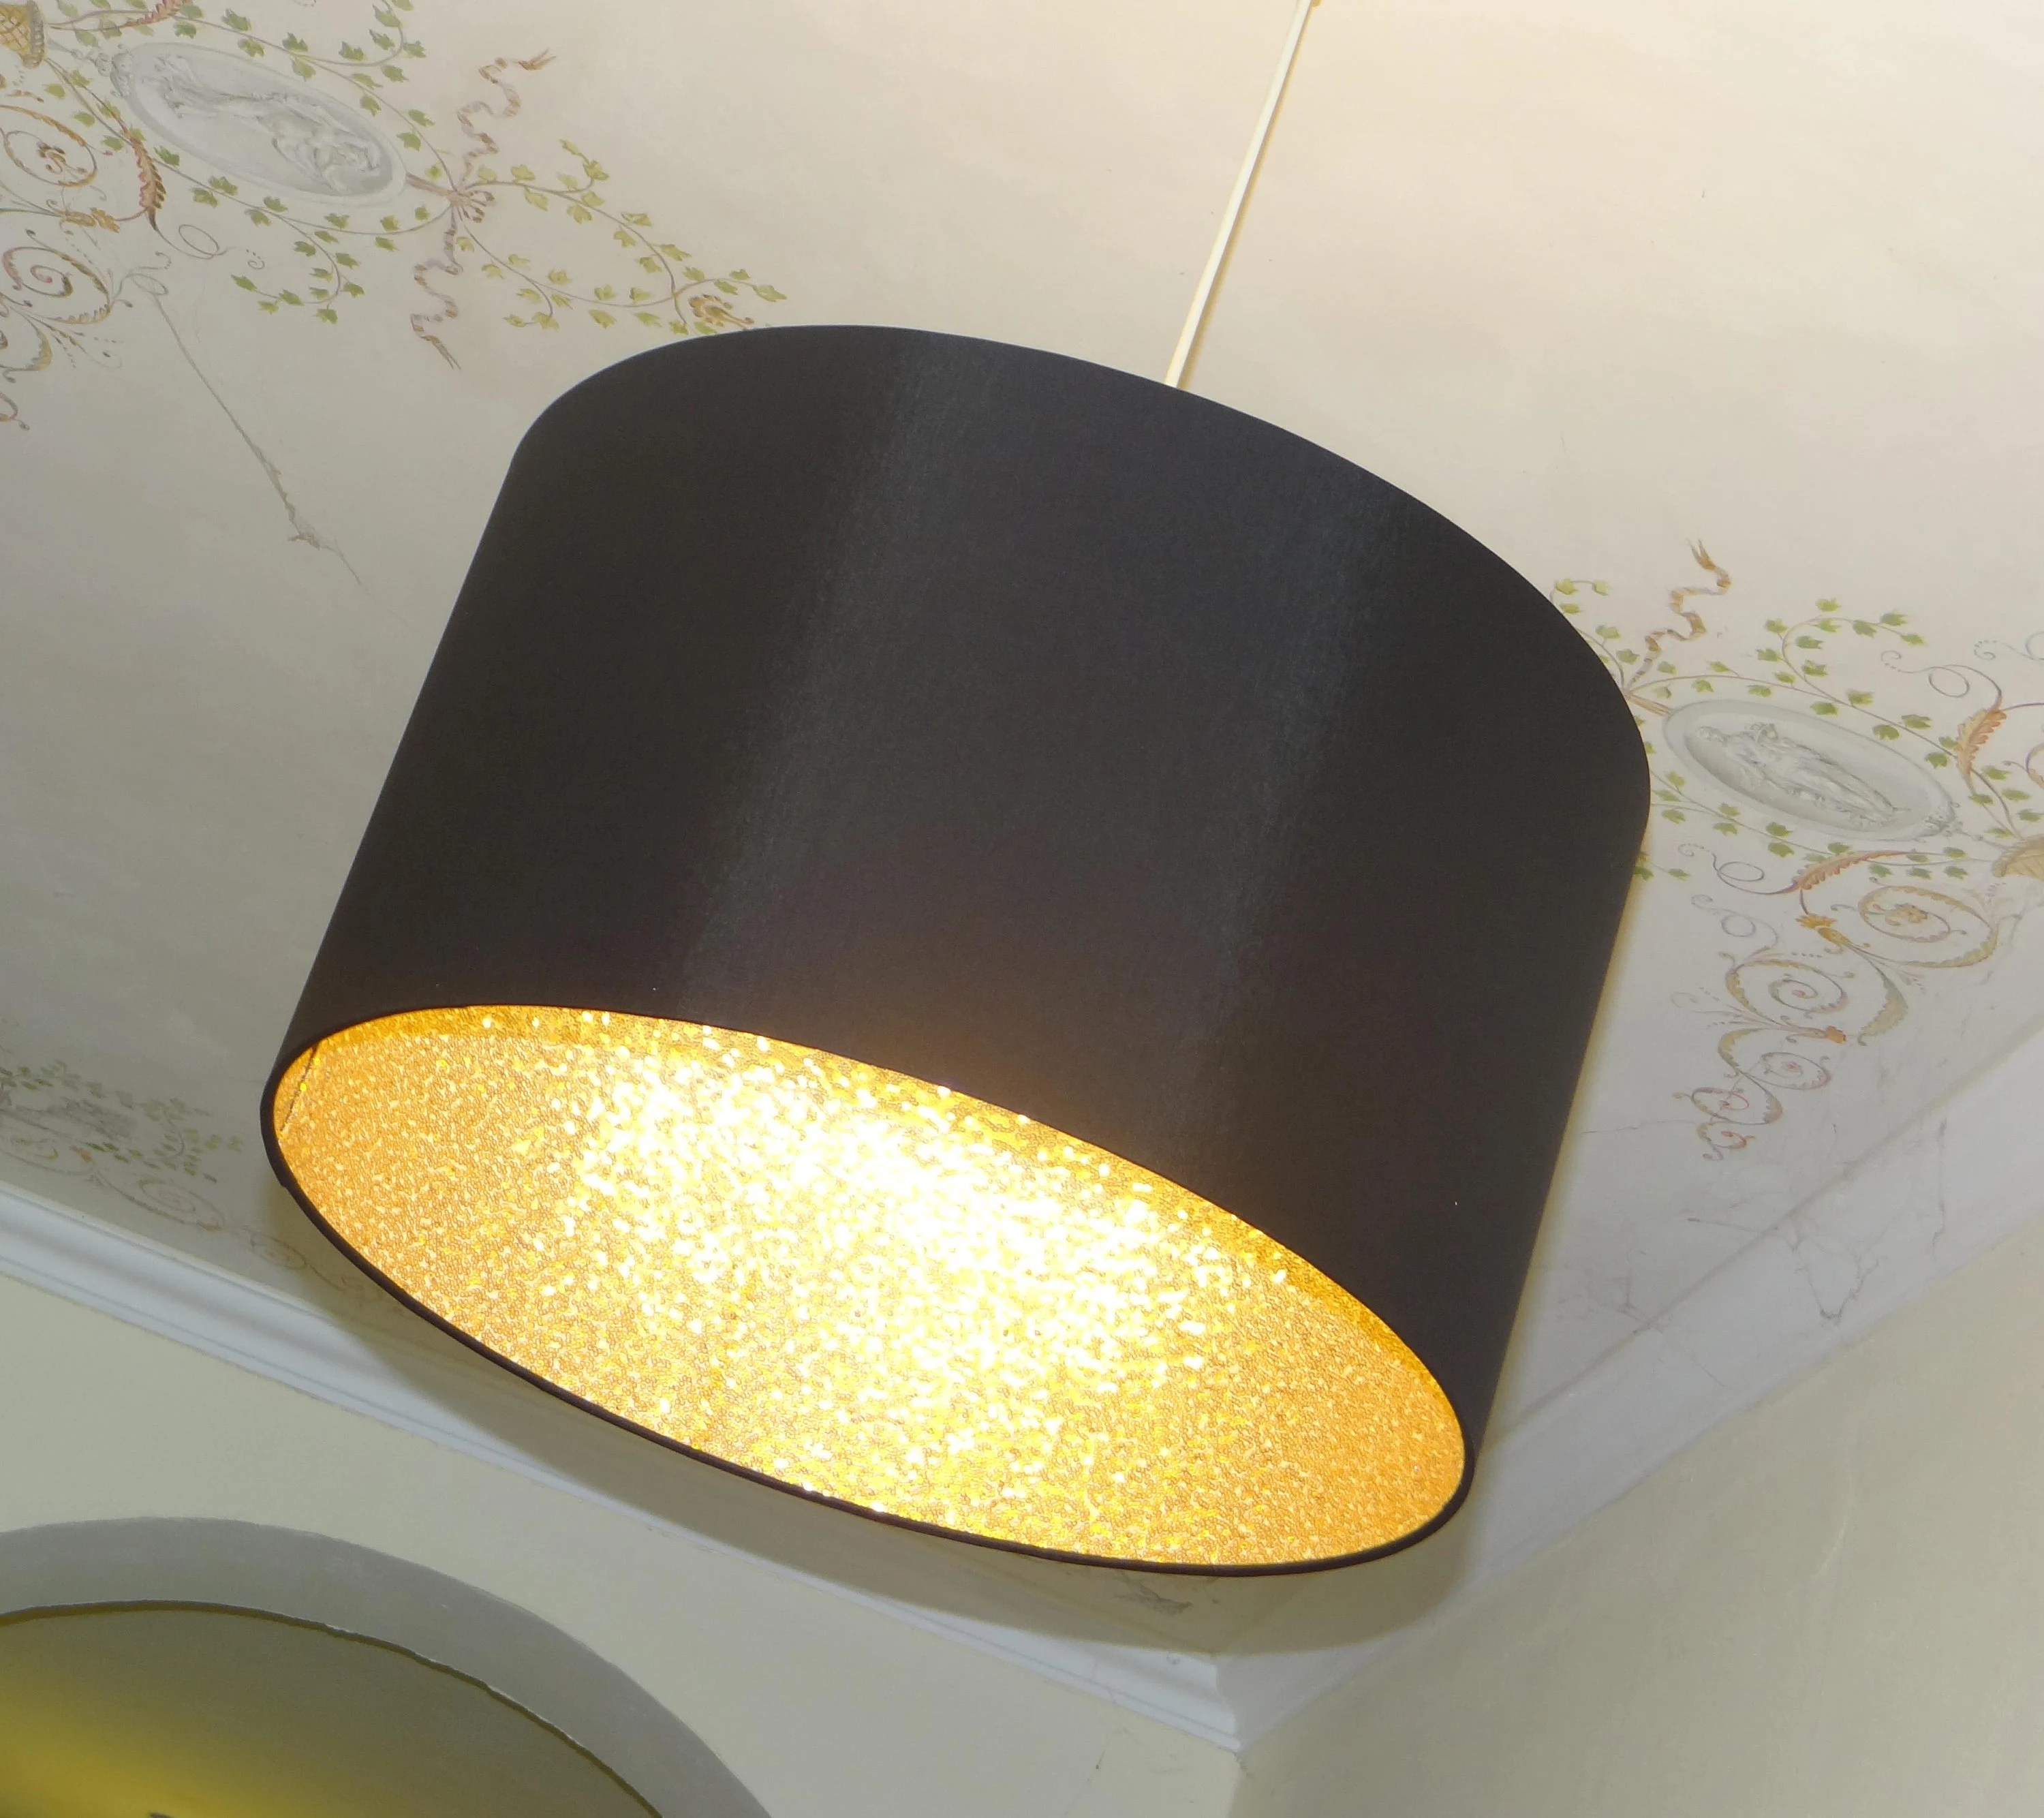 Lichthaus Worpswede Lampshade 45 Cm Black & Gold Sequins